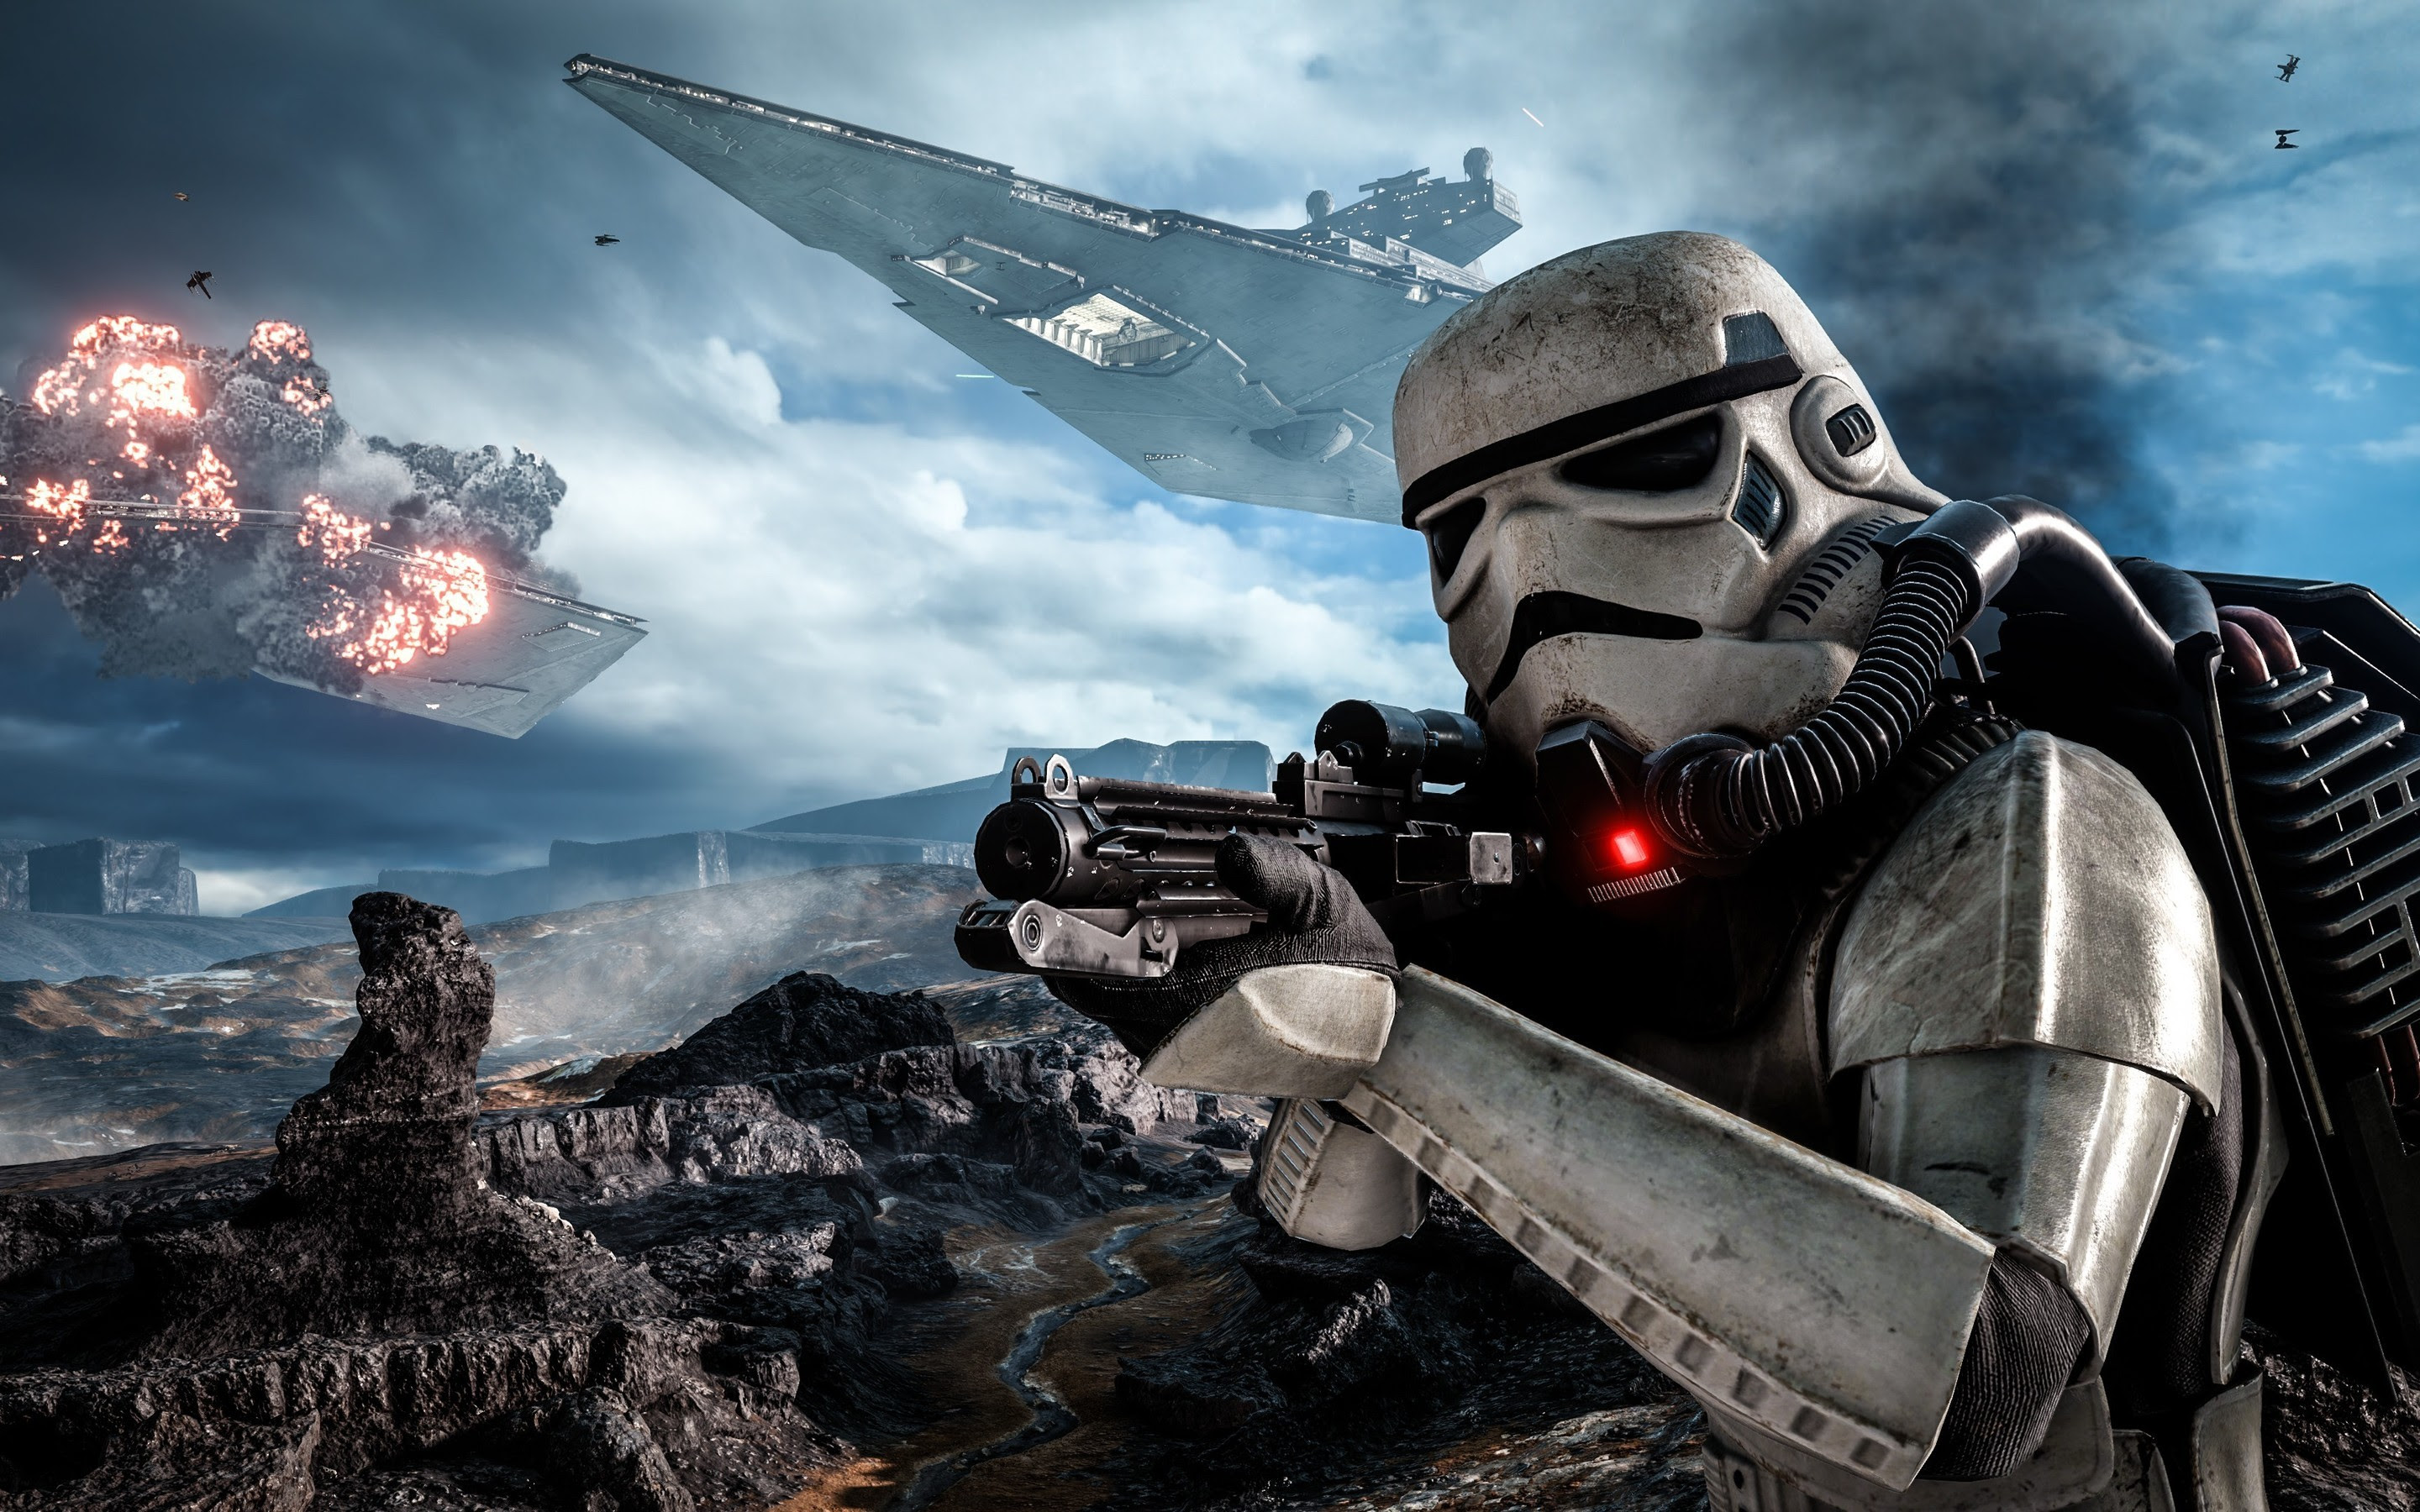 Star Wars Battlefront Wallpaper Hd 70 Images